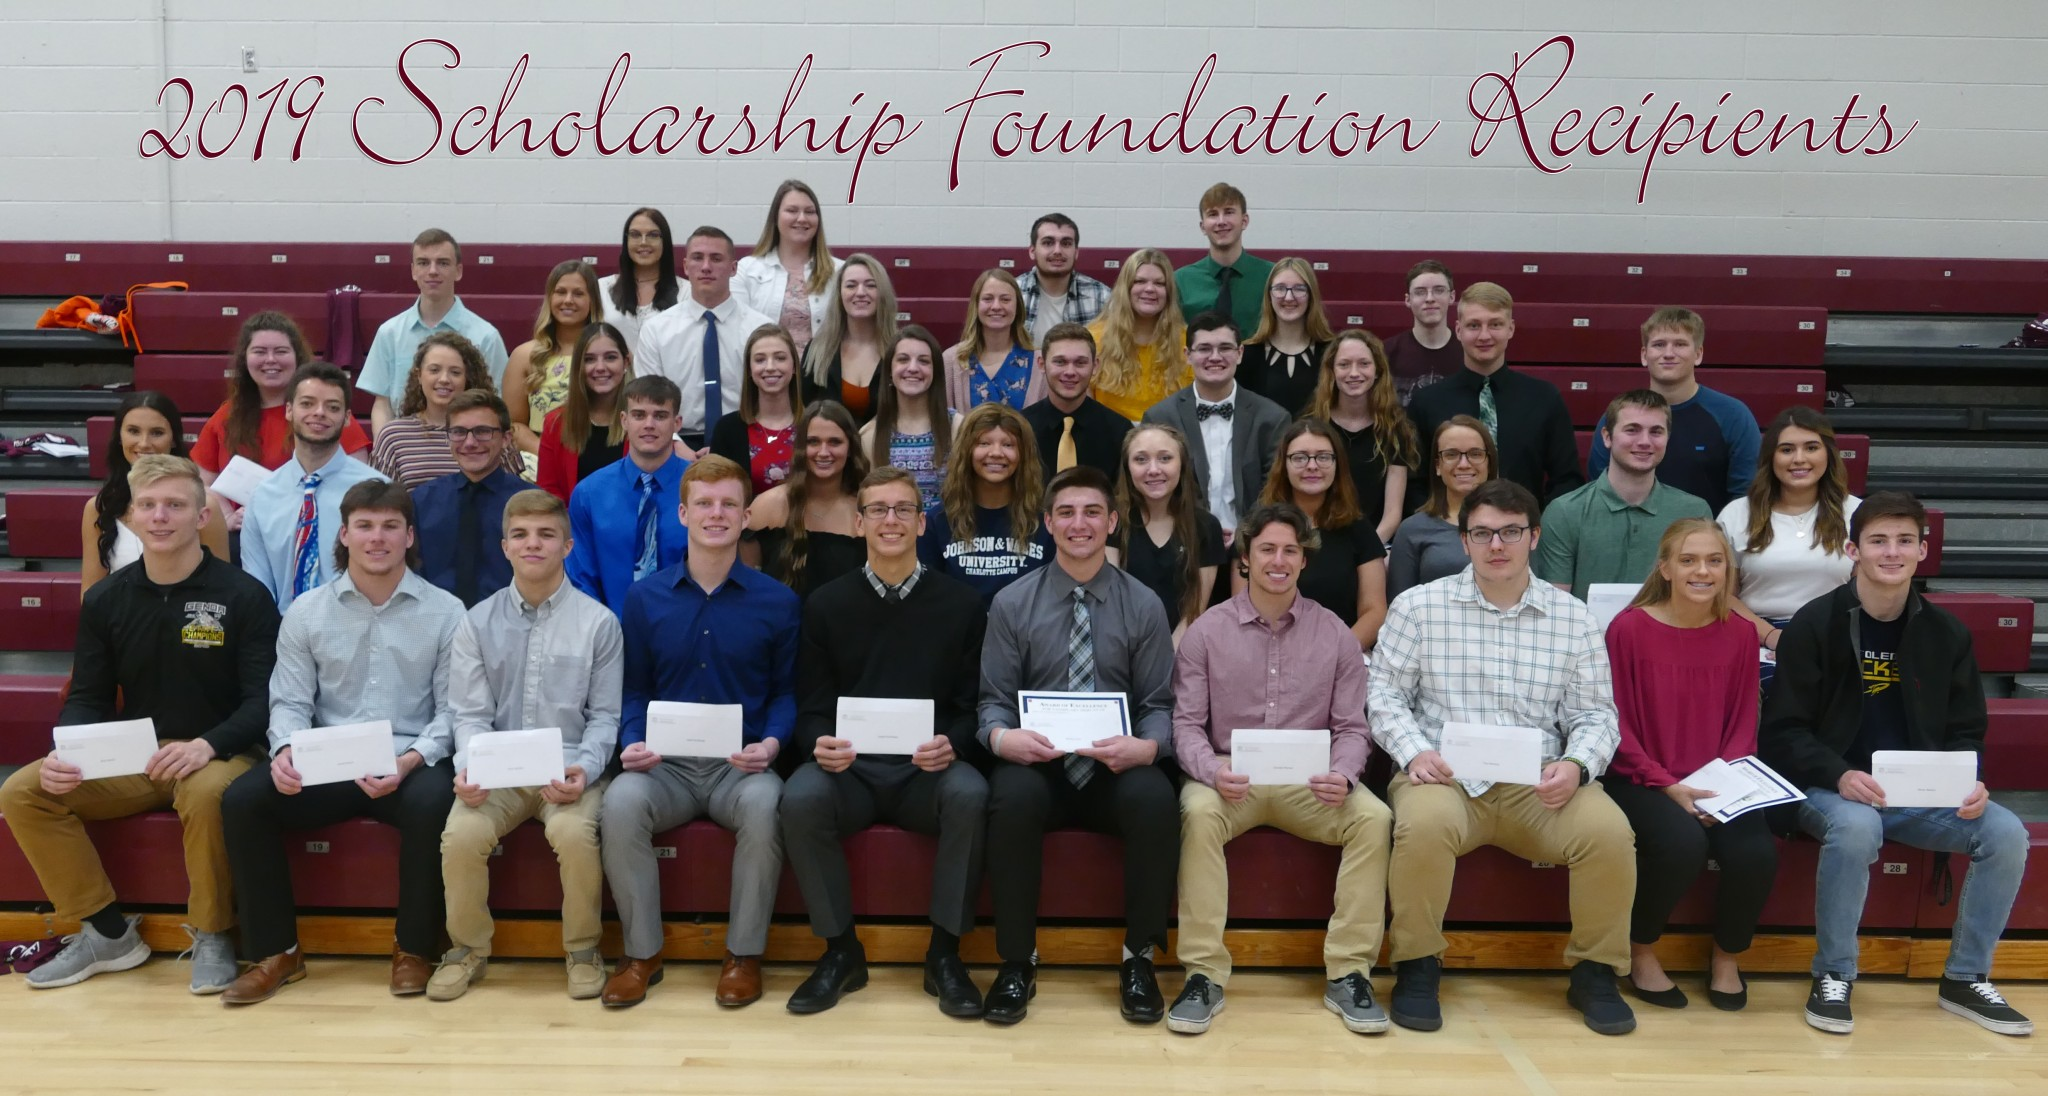 The Genoa Area Local Schools Scholarship Foundation, Inc. announced the recipients of the 2019 scholarships at an Honors Awards Program held May 9 at the high school. This year, 45 students received scholarships through the Foundation. (Submitted photo)